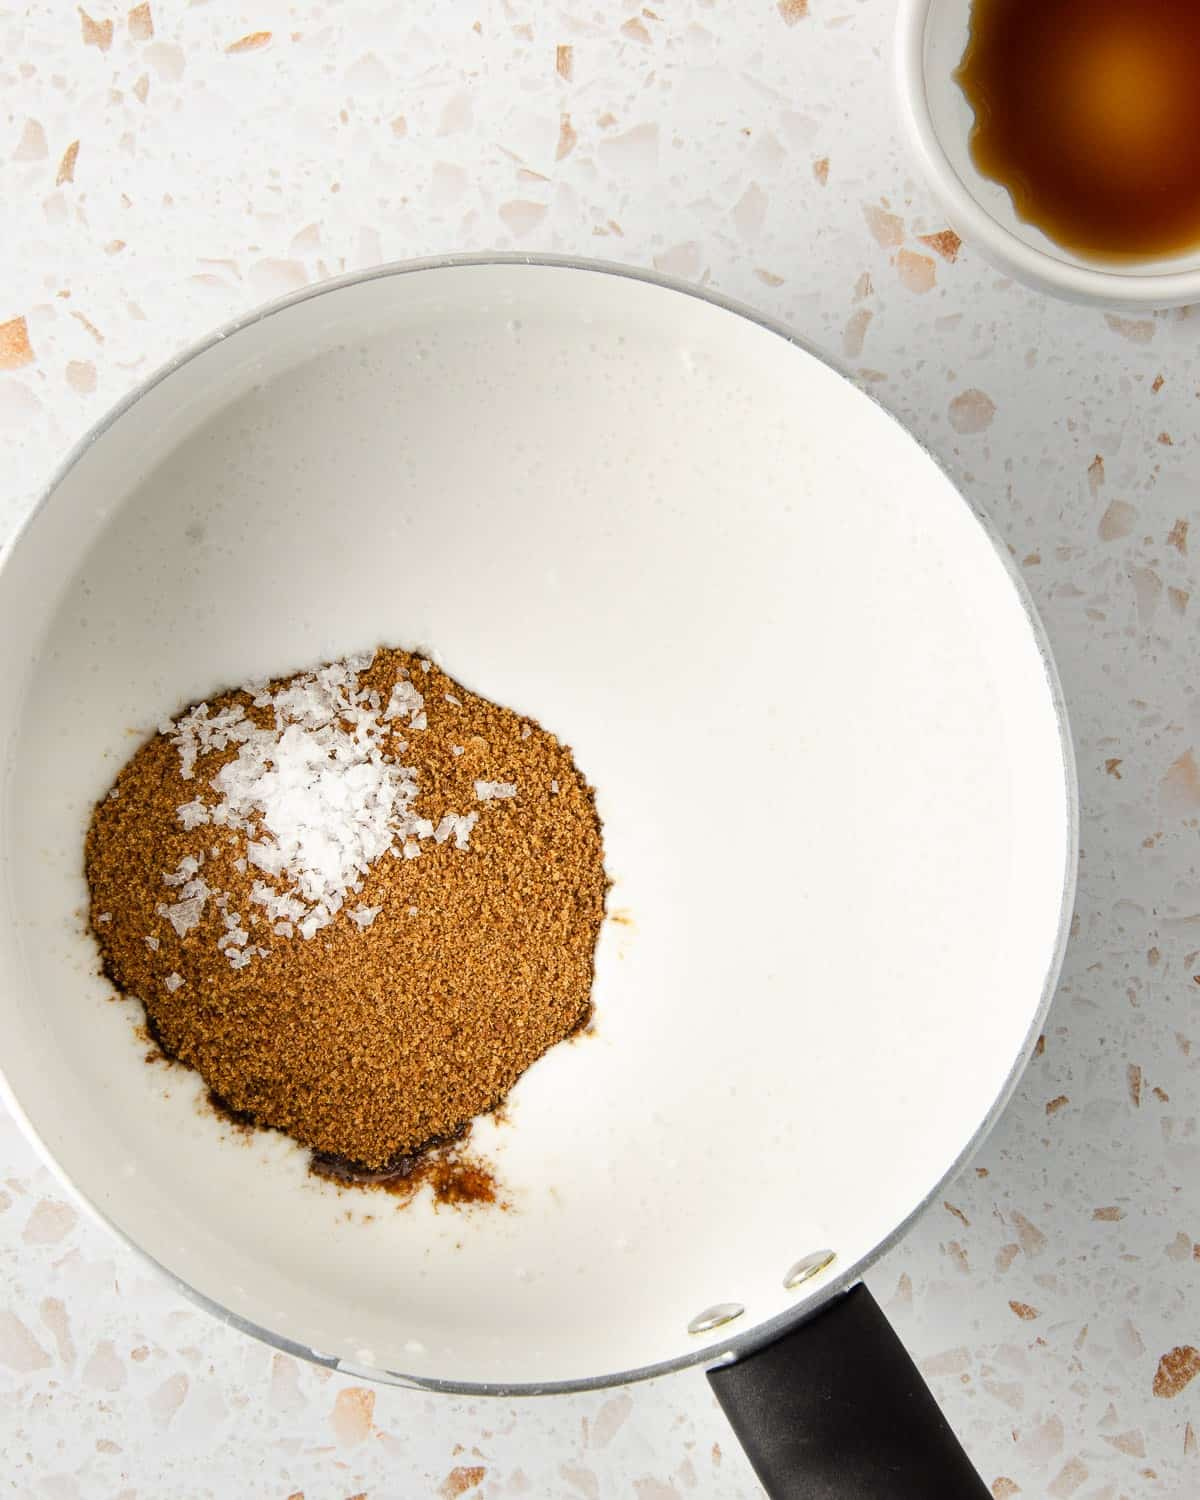 coconut cream in a small pot with coconut sugar and sea salt tossed into it.